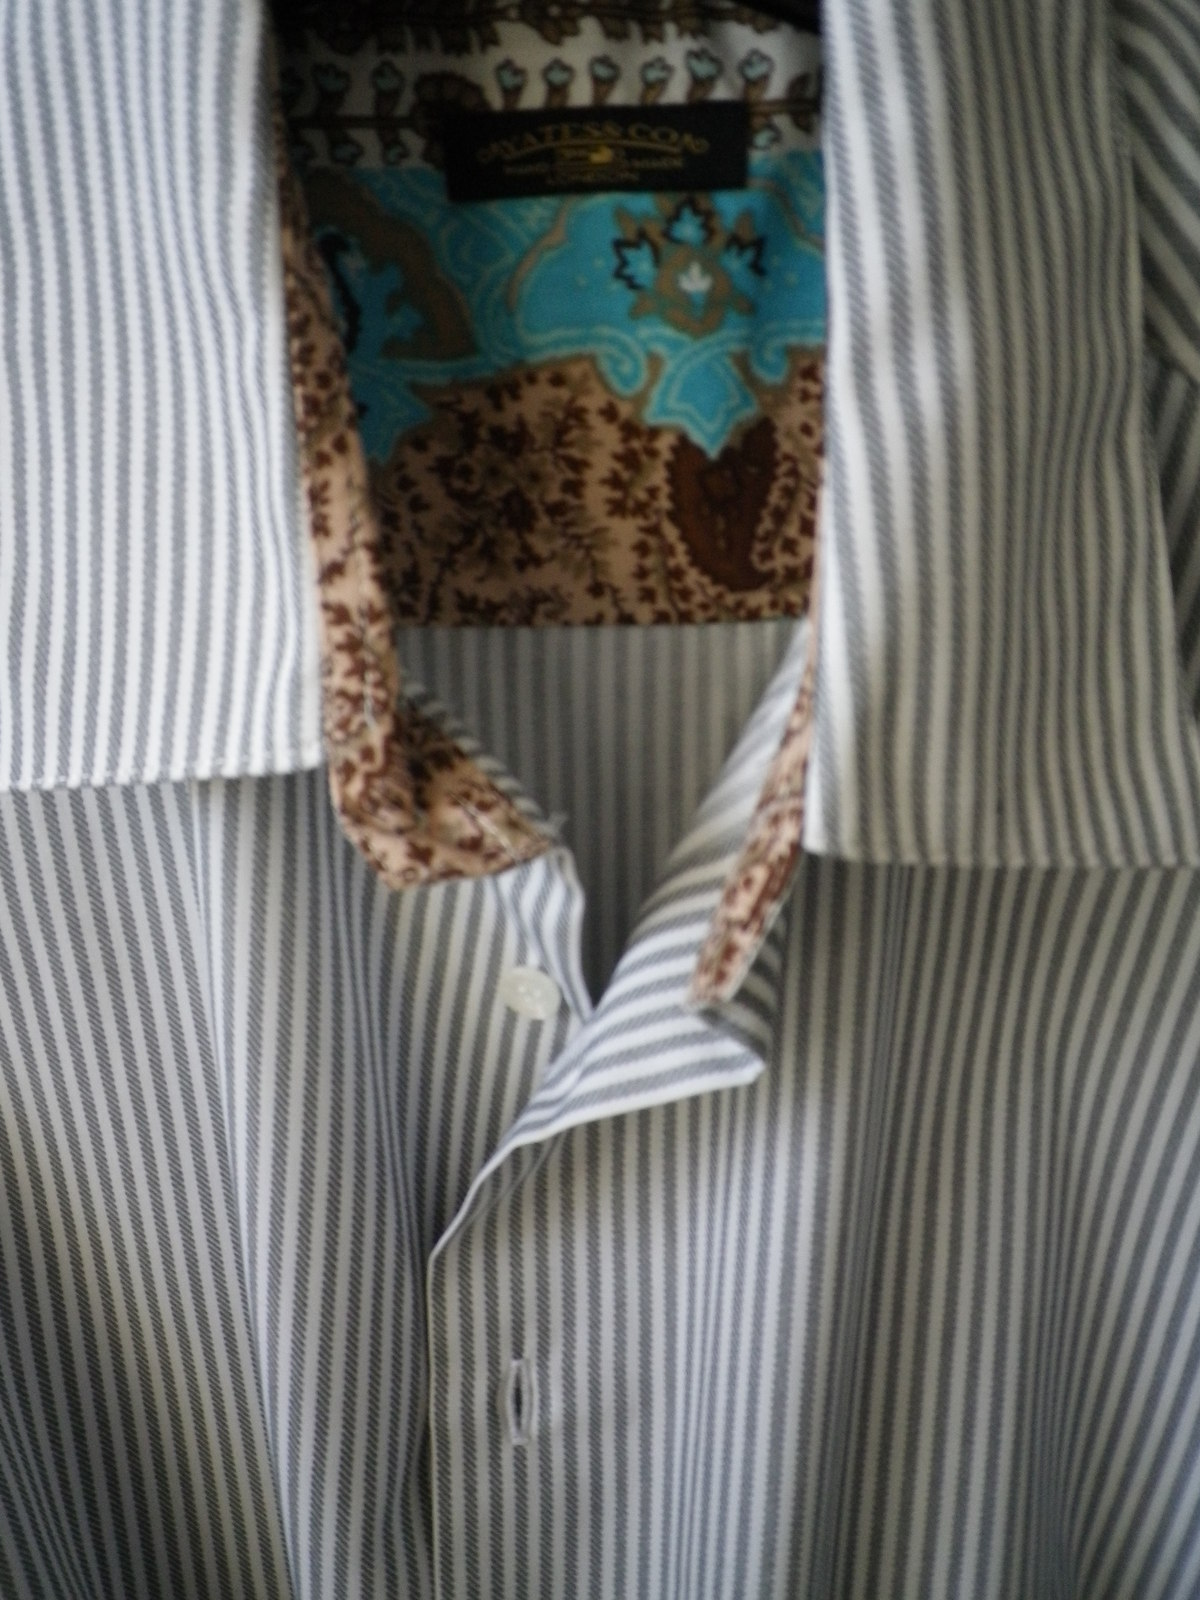 Primary image for Yates &Co elegant grey stripe twill weave sport shirt soft contrast cuff/ collar